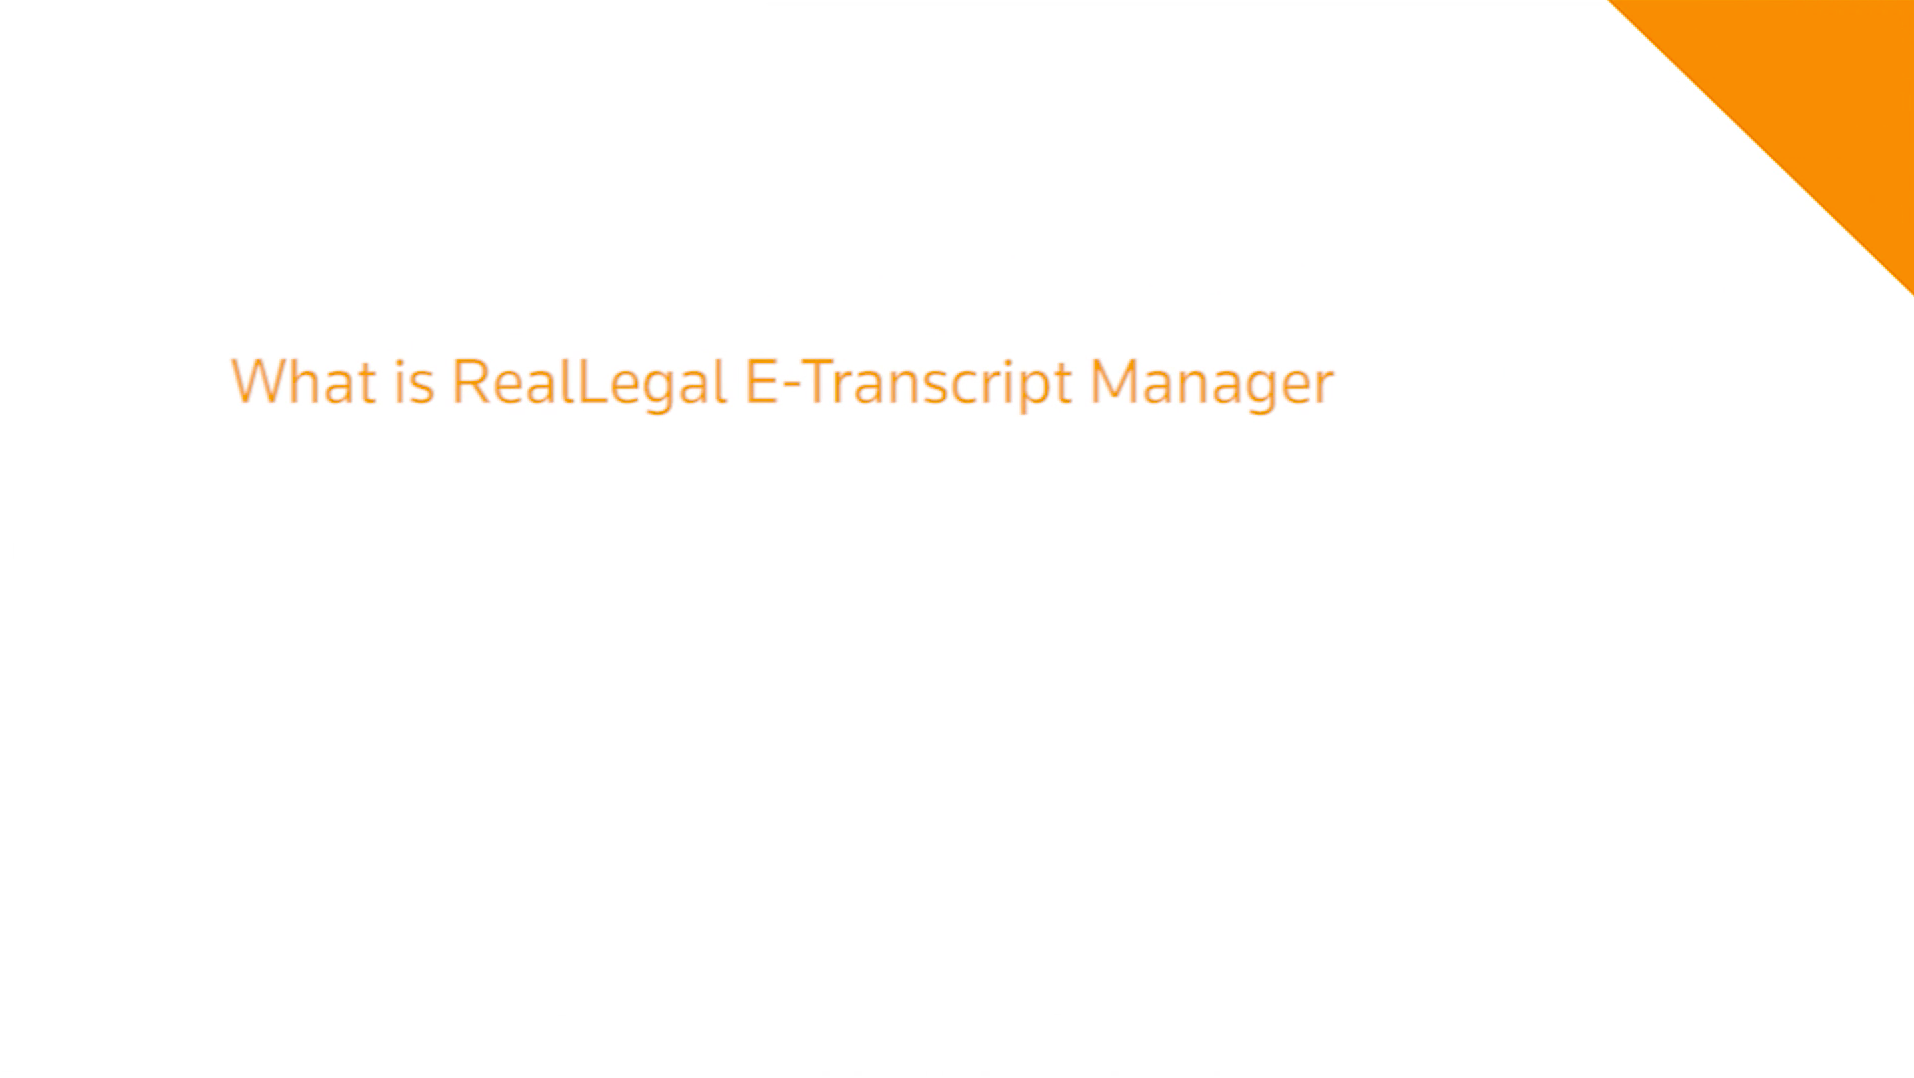 What is RealLegal E-Transcript Manager video player